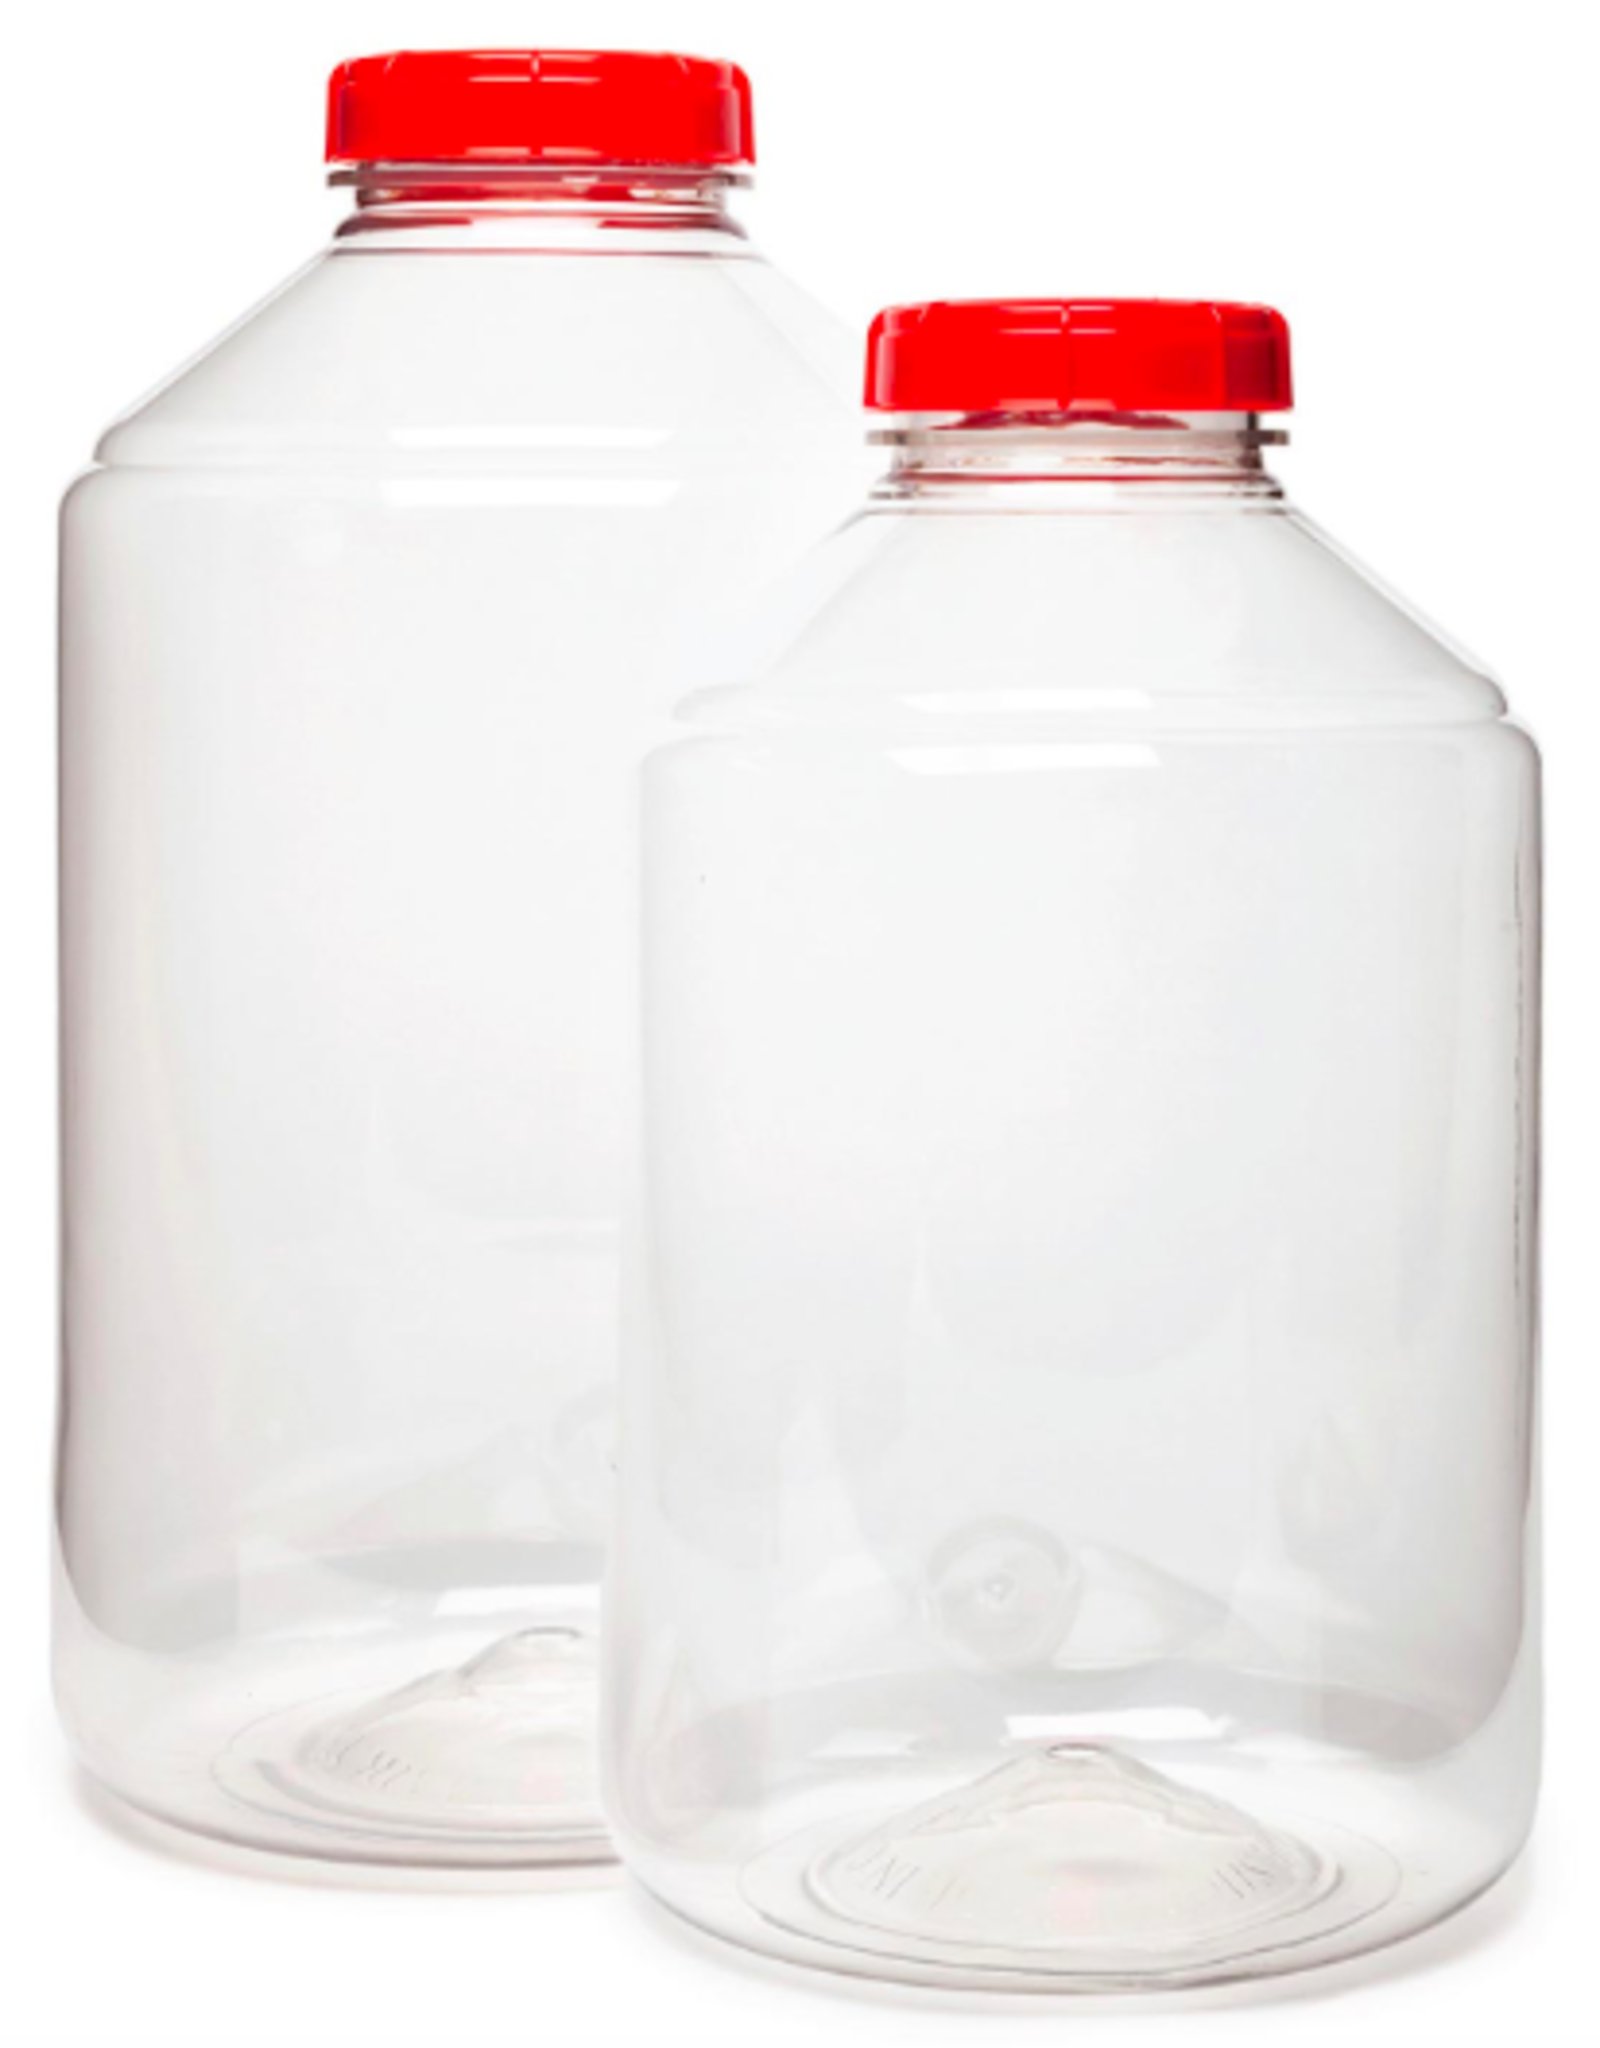 PET CARBOY 6 GALLON INCLUDES LID W/HOLE need weight